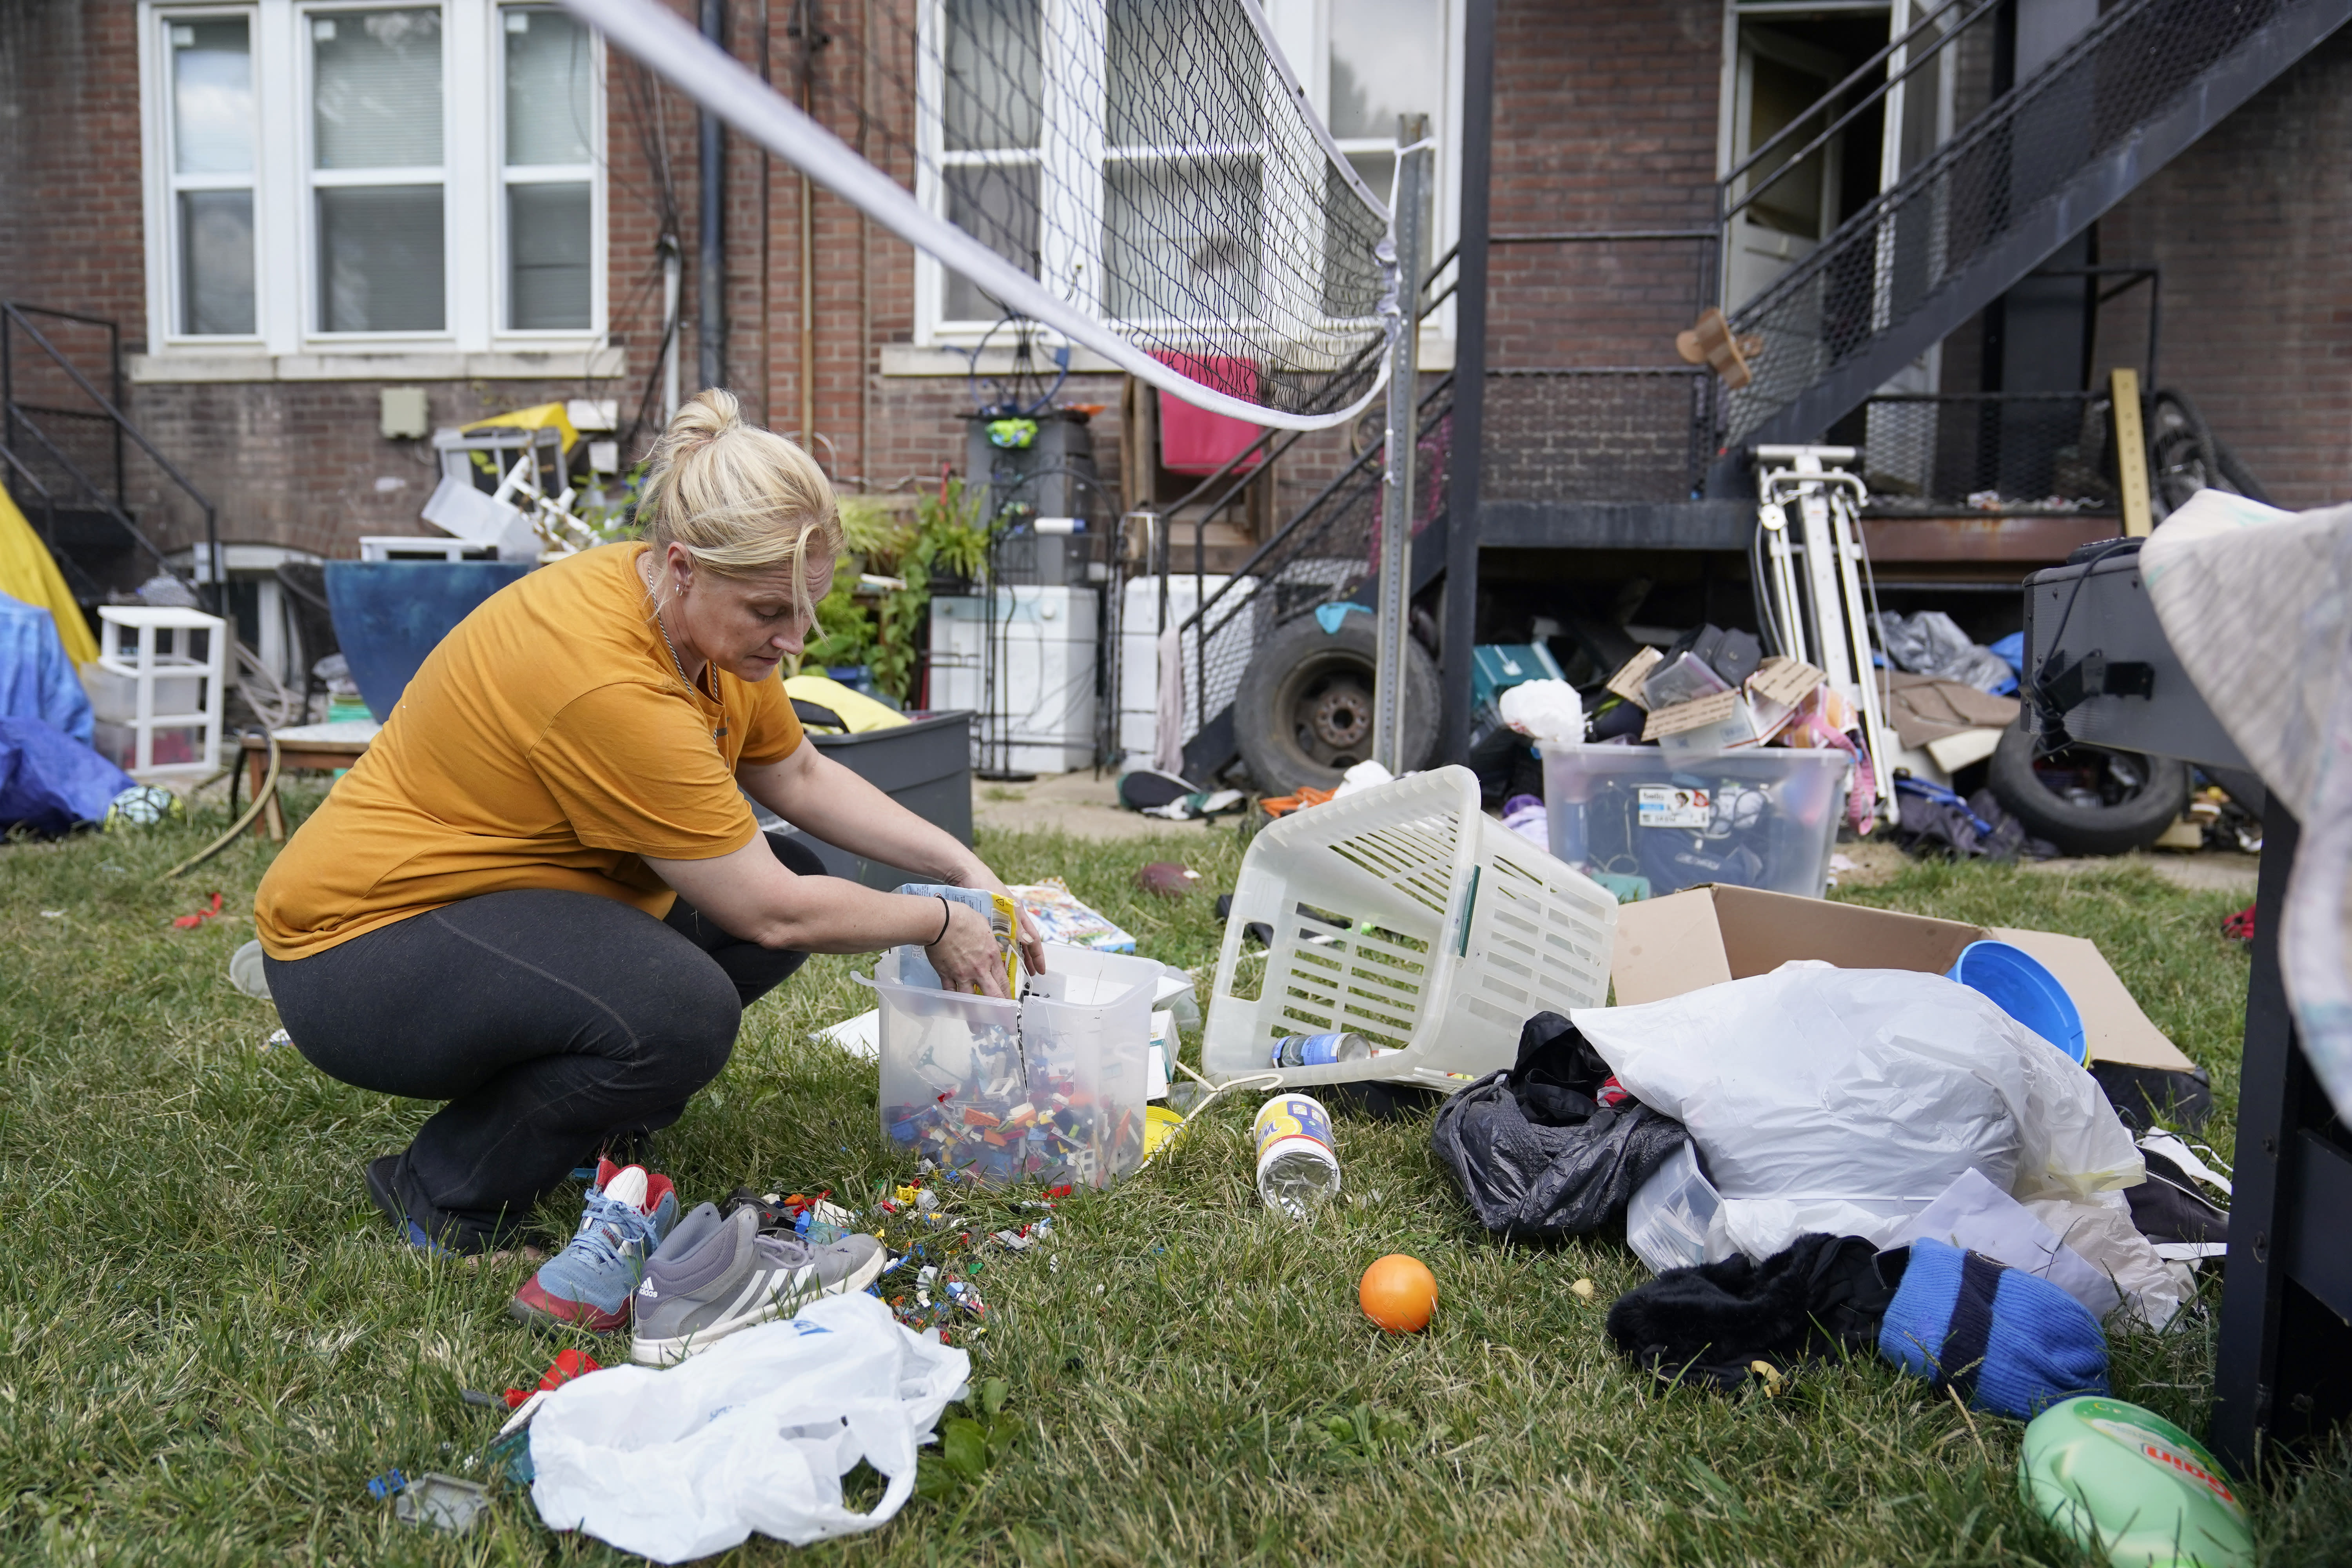 St. Louis woman after eviction: 'I have no idea' what to do